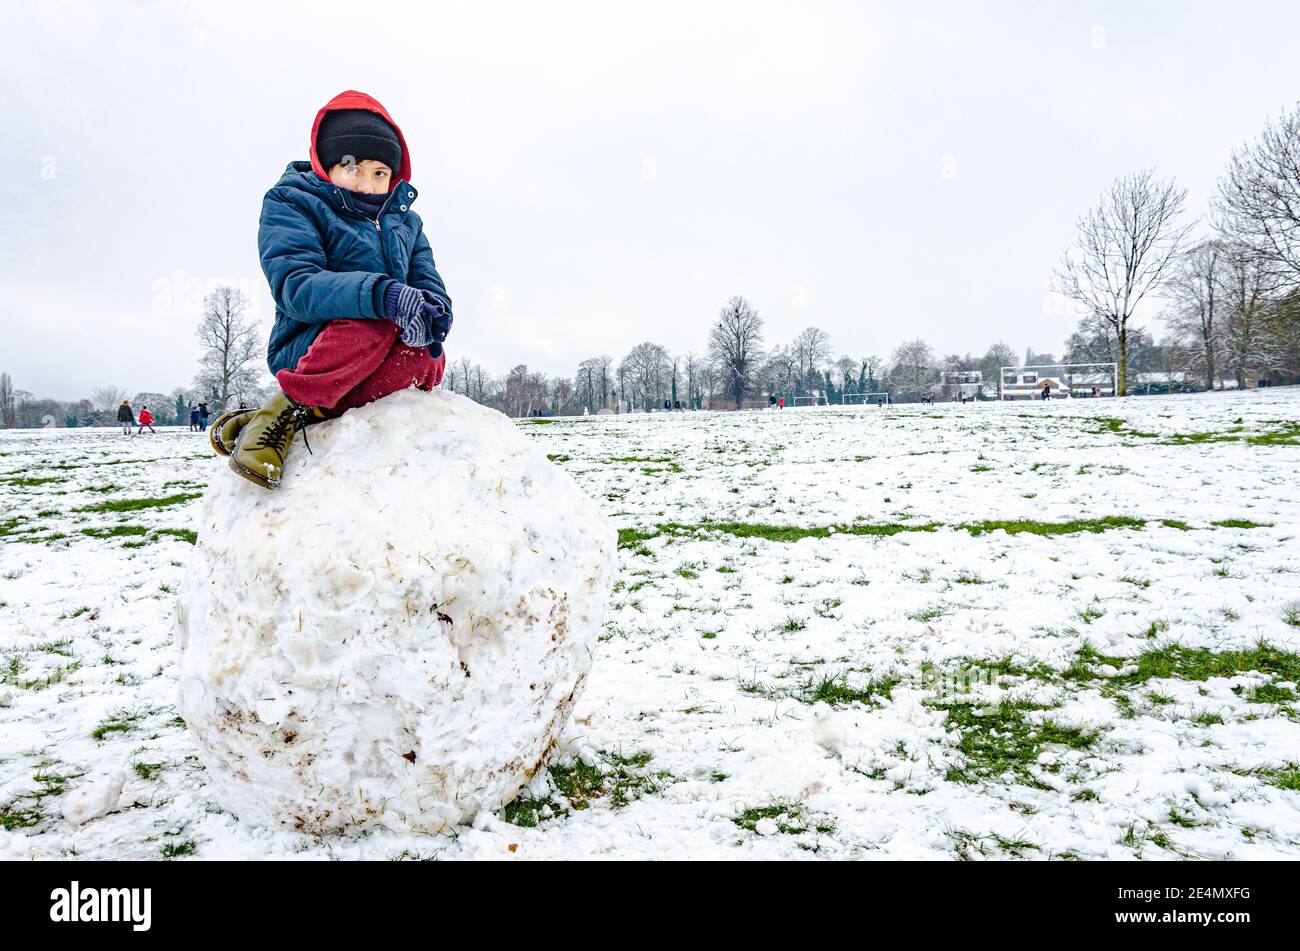 a-boy-sits-on-a-huge-boulder-made-of-snow-in-prospect-park-in-reading-berkshire-uk-2E4MXFG.jpg